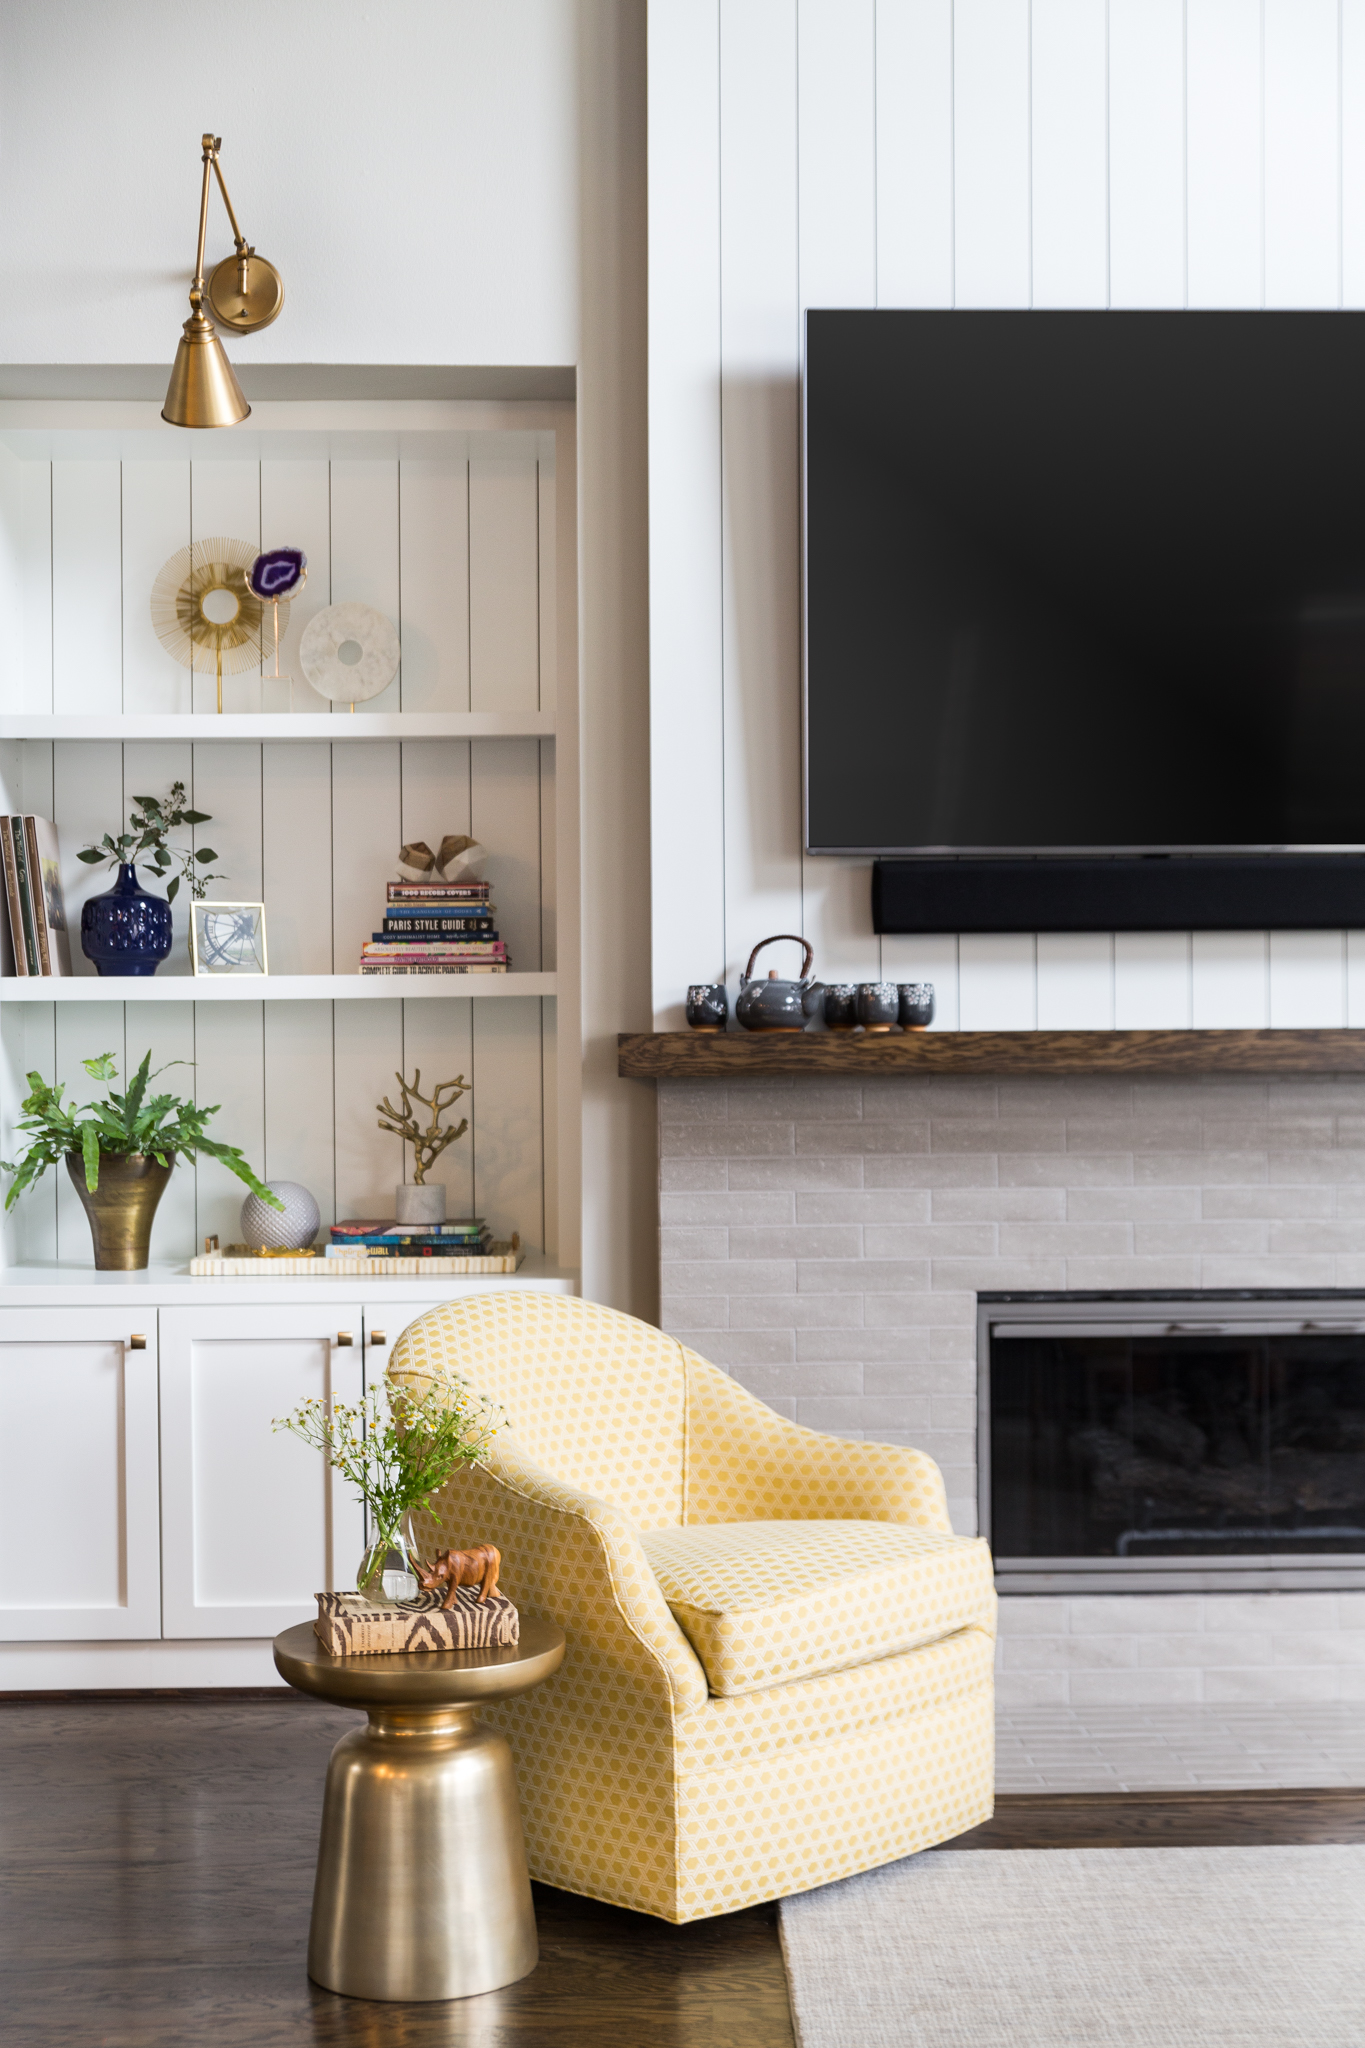 BEFORE AND AFTER - A Fresh, Light Family-Friendly Home Makeover | Carla Aston, Designer | Colleen Scott, Photographer #livingroom #livingroomideas #fireplace #tvplacement